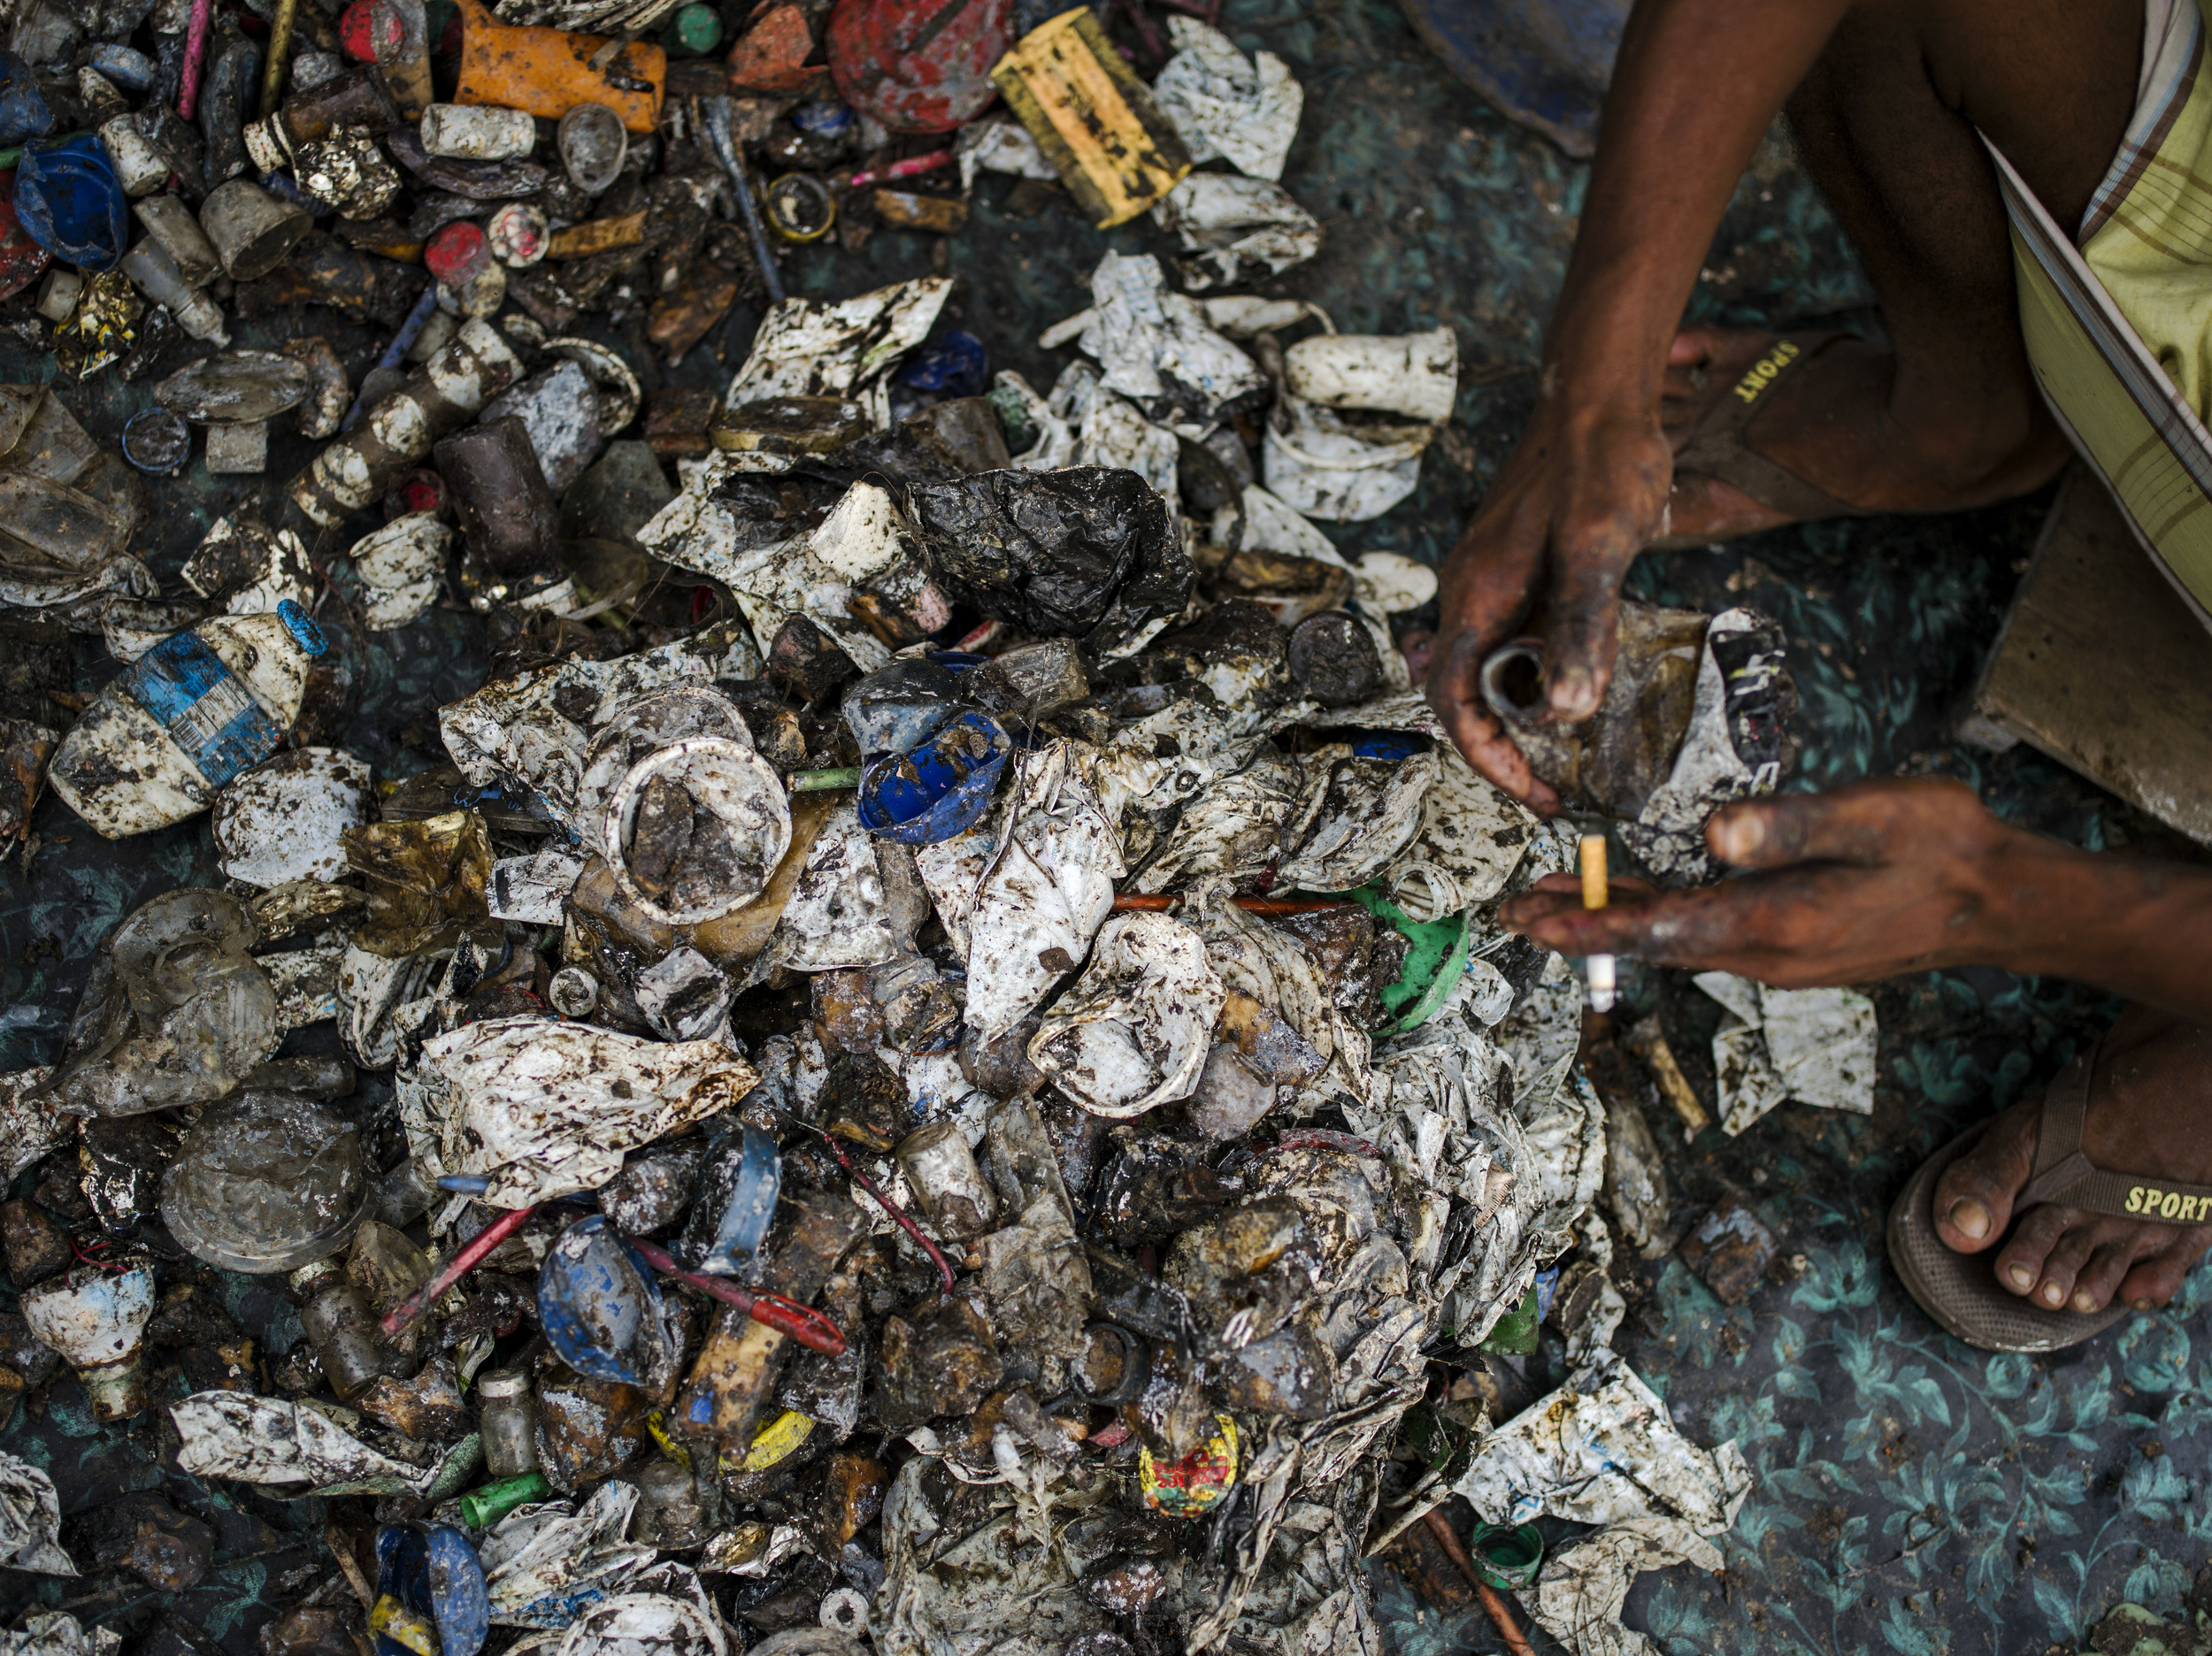 Scraps collected for recycling. Mutual Landfill, Dhaka.